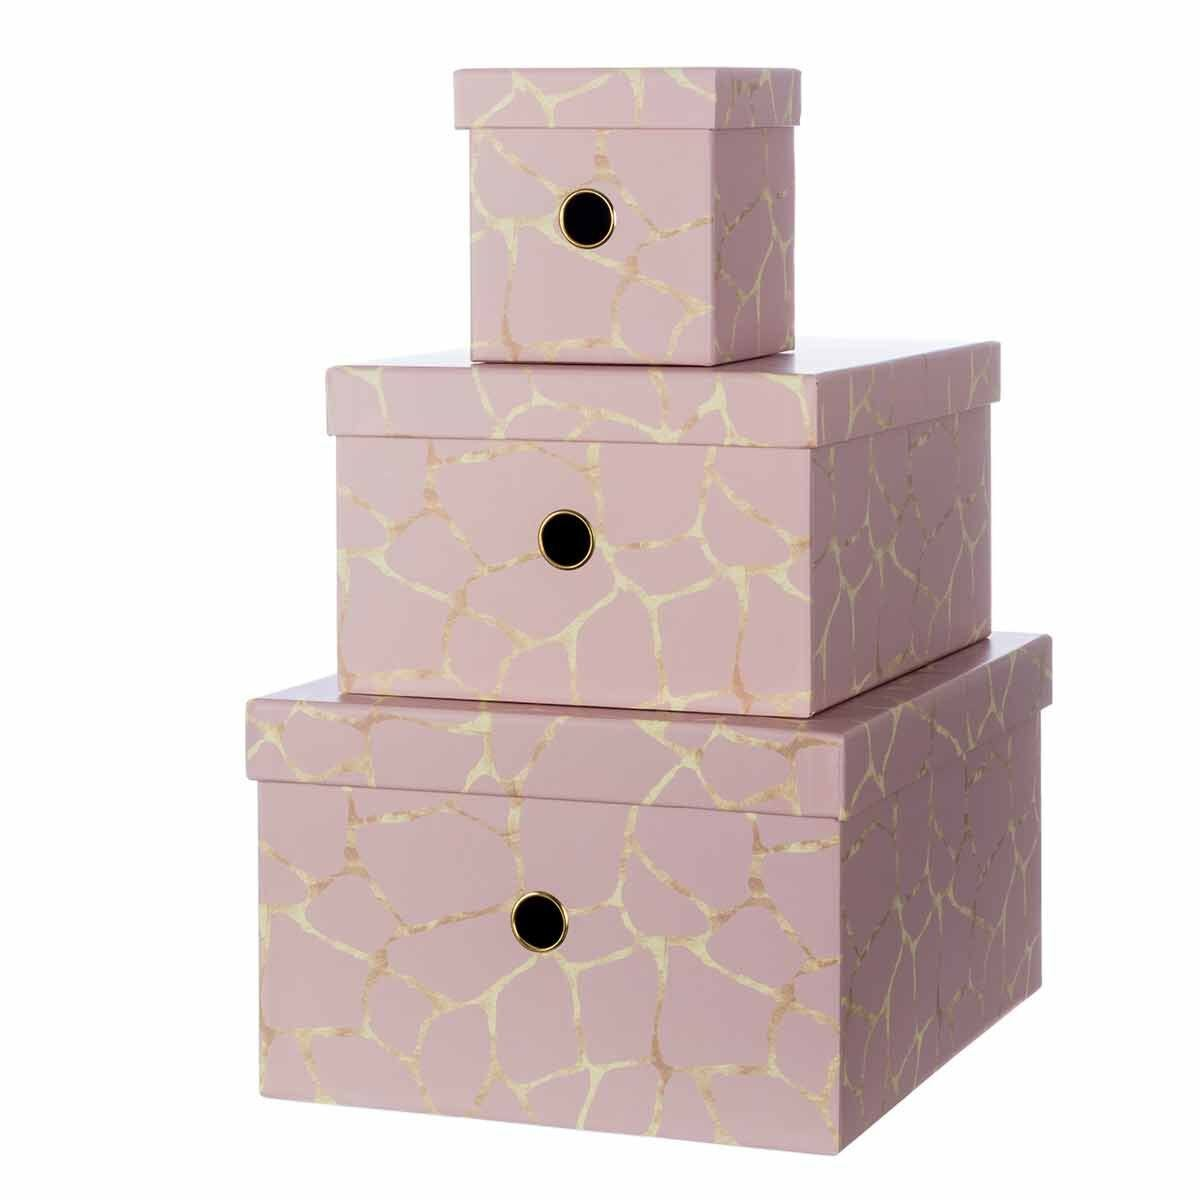 Ryman Storage Boxes Rose Gold Design Set of 3